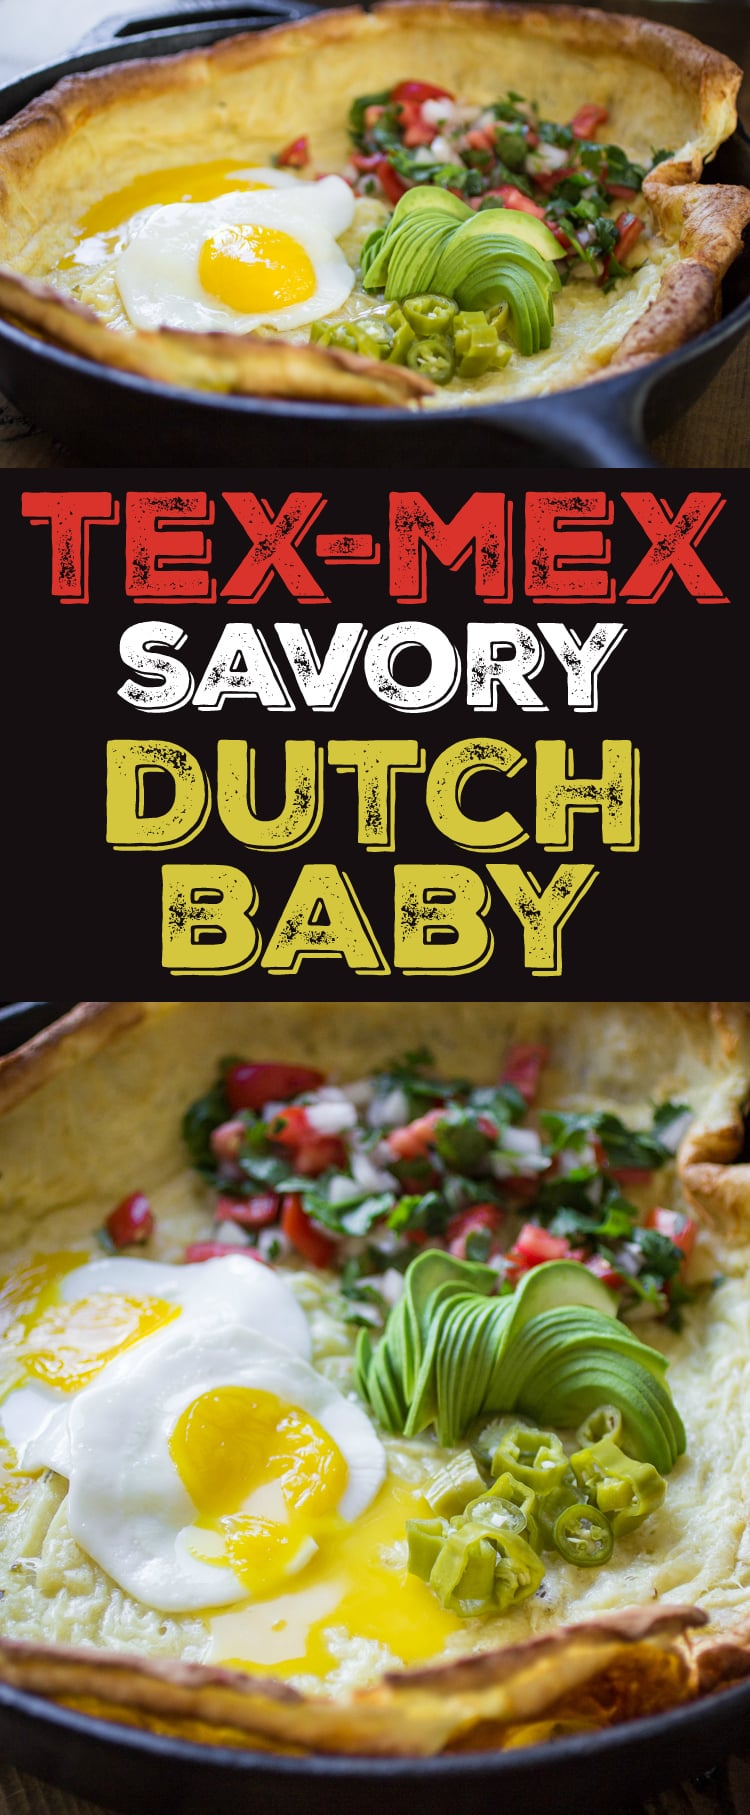 The world's most under-appreciated breakfast just got a whole lot tastier. This savory Tex-Mex Dutch Baby will delight and satisfy everyone at the table.